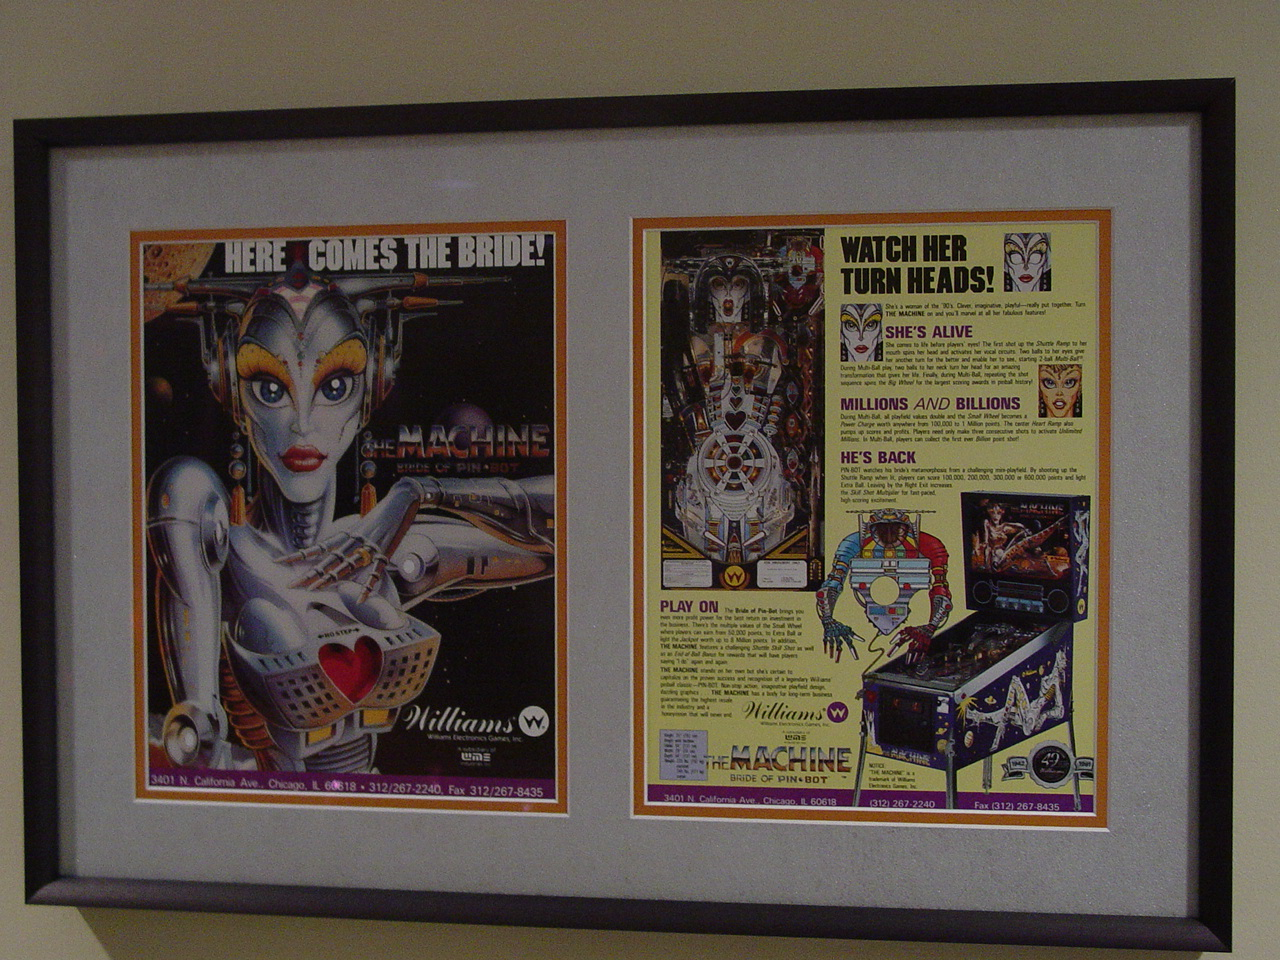 Framed Bride of Pinbot Flyer